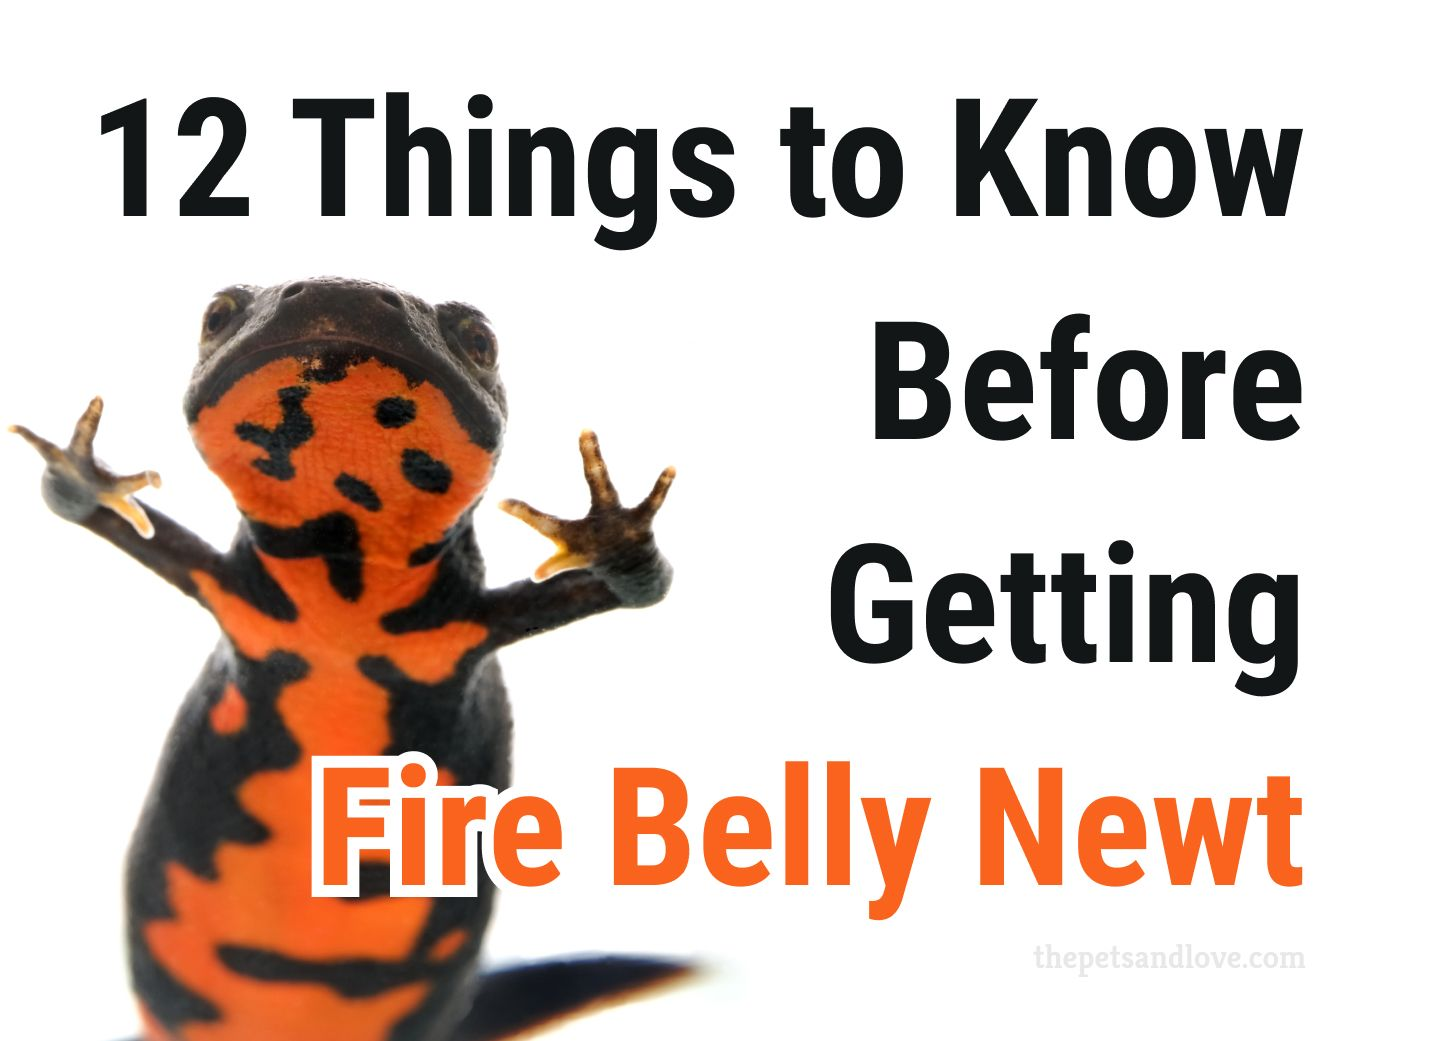 Important Things to Know About Fire Belly Newt